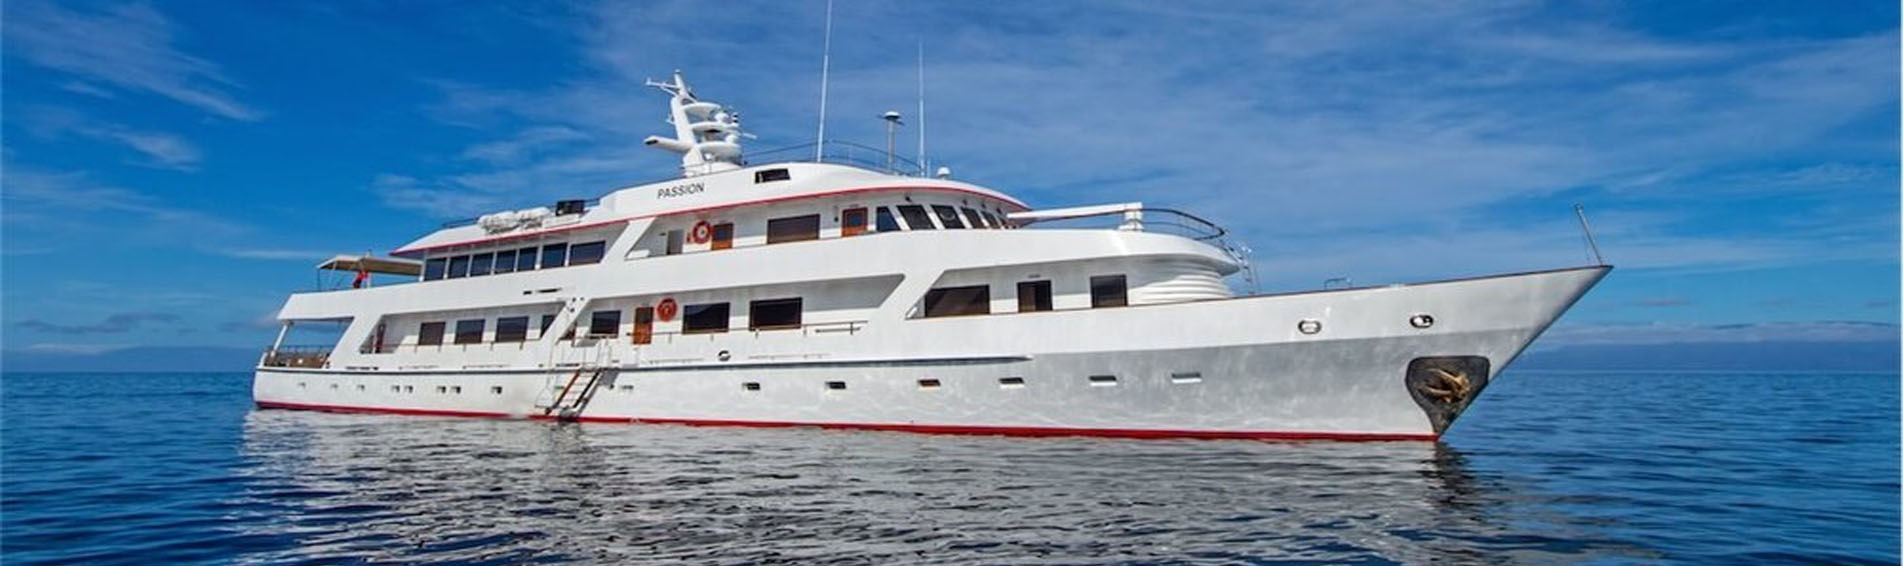 MV Passion Prices Galapagos Islands cruises